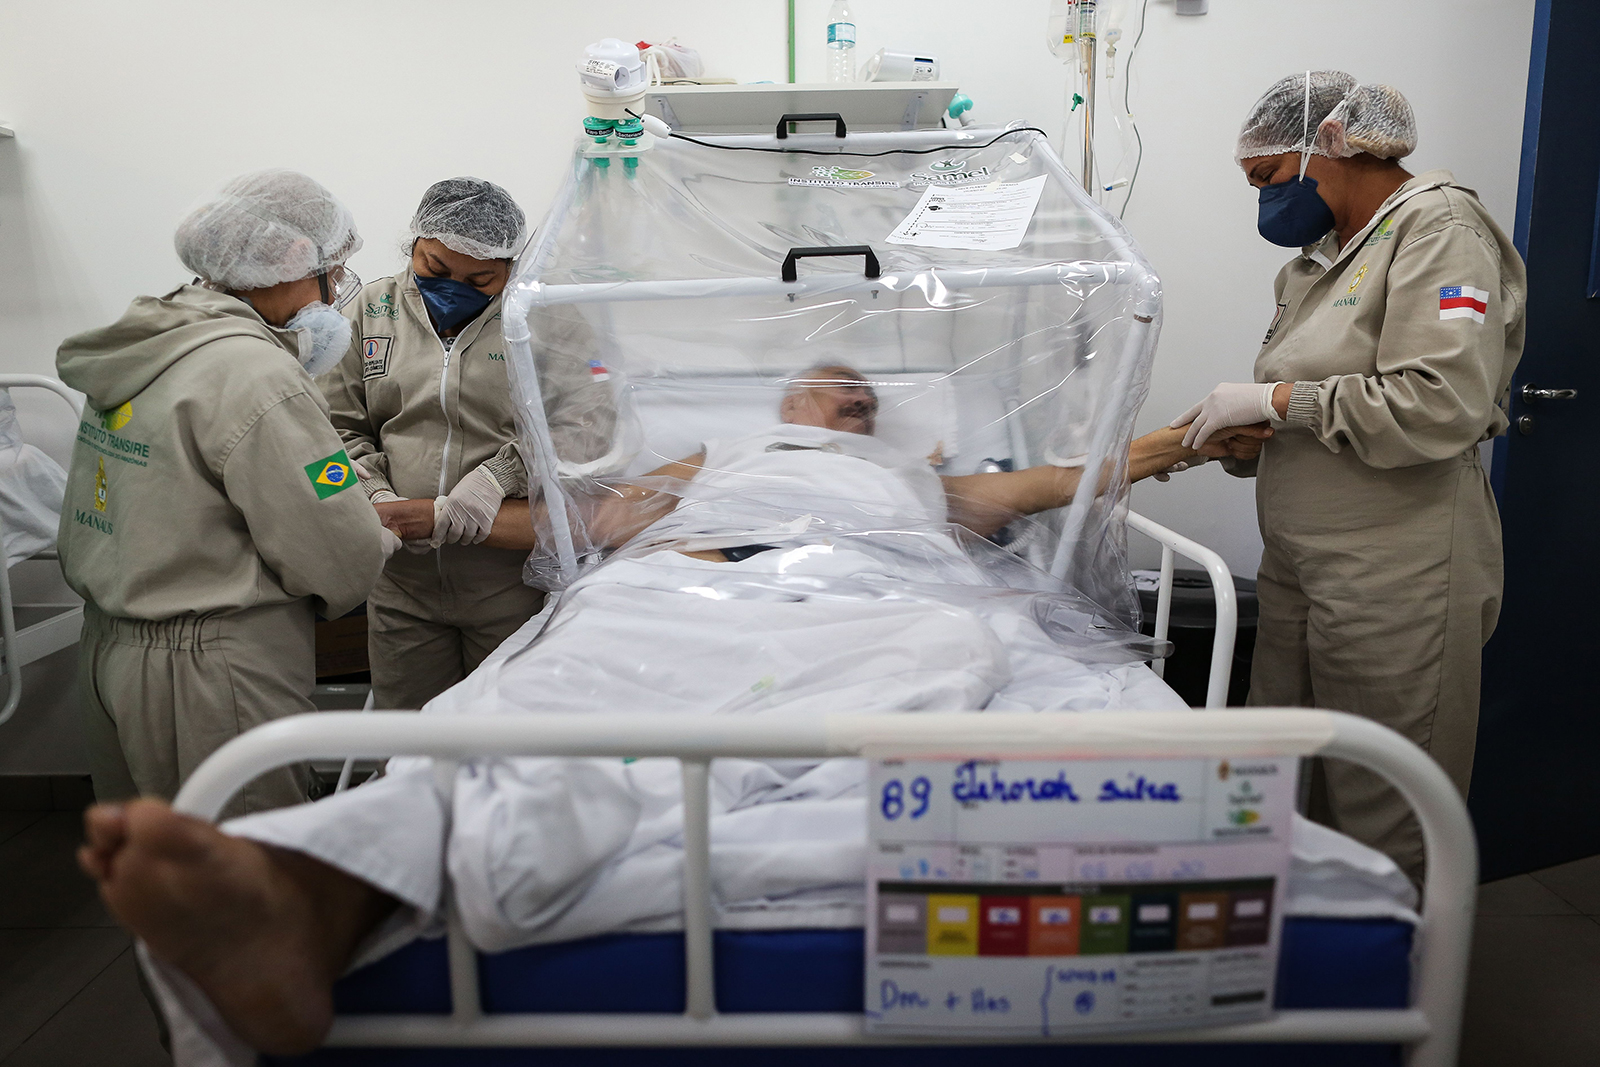 Health workers assist a COVID-19 patient at the Gilberto Novaes Municipal Hospital in Manaus, Brazil, on June 8.